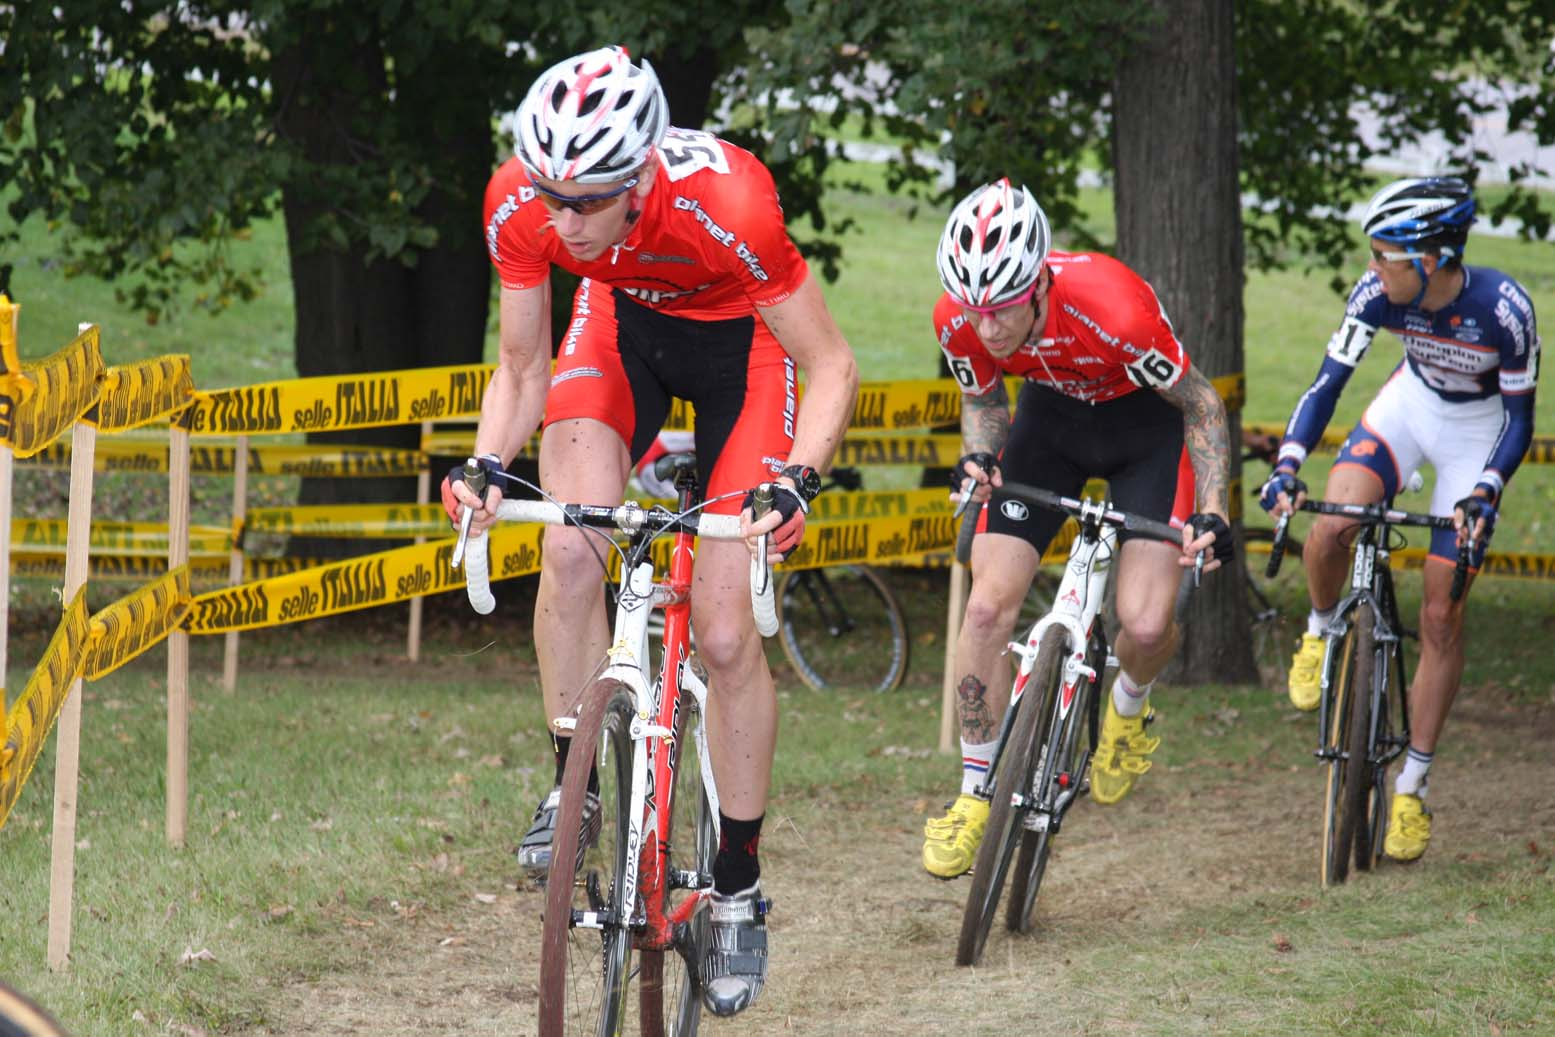 Tristan Schouten (Planet Bike) and Mark Lalonde (Planet Bike) had career days. by Amy Dykema